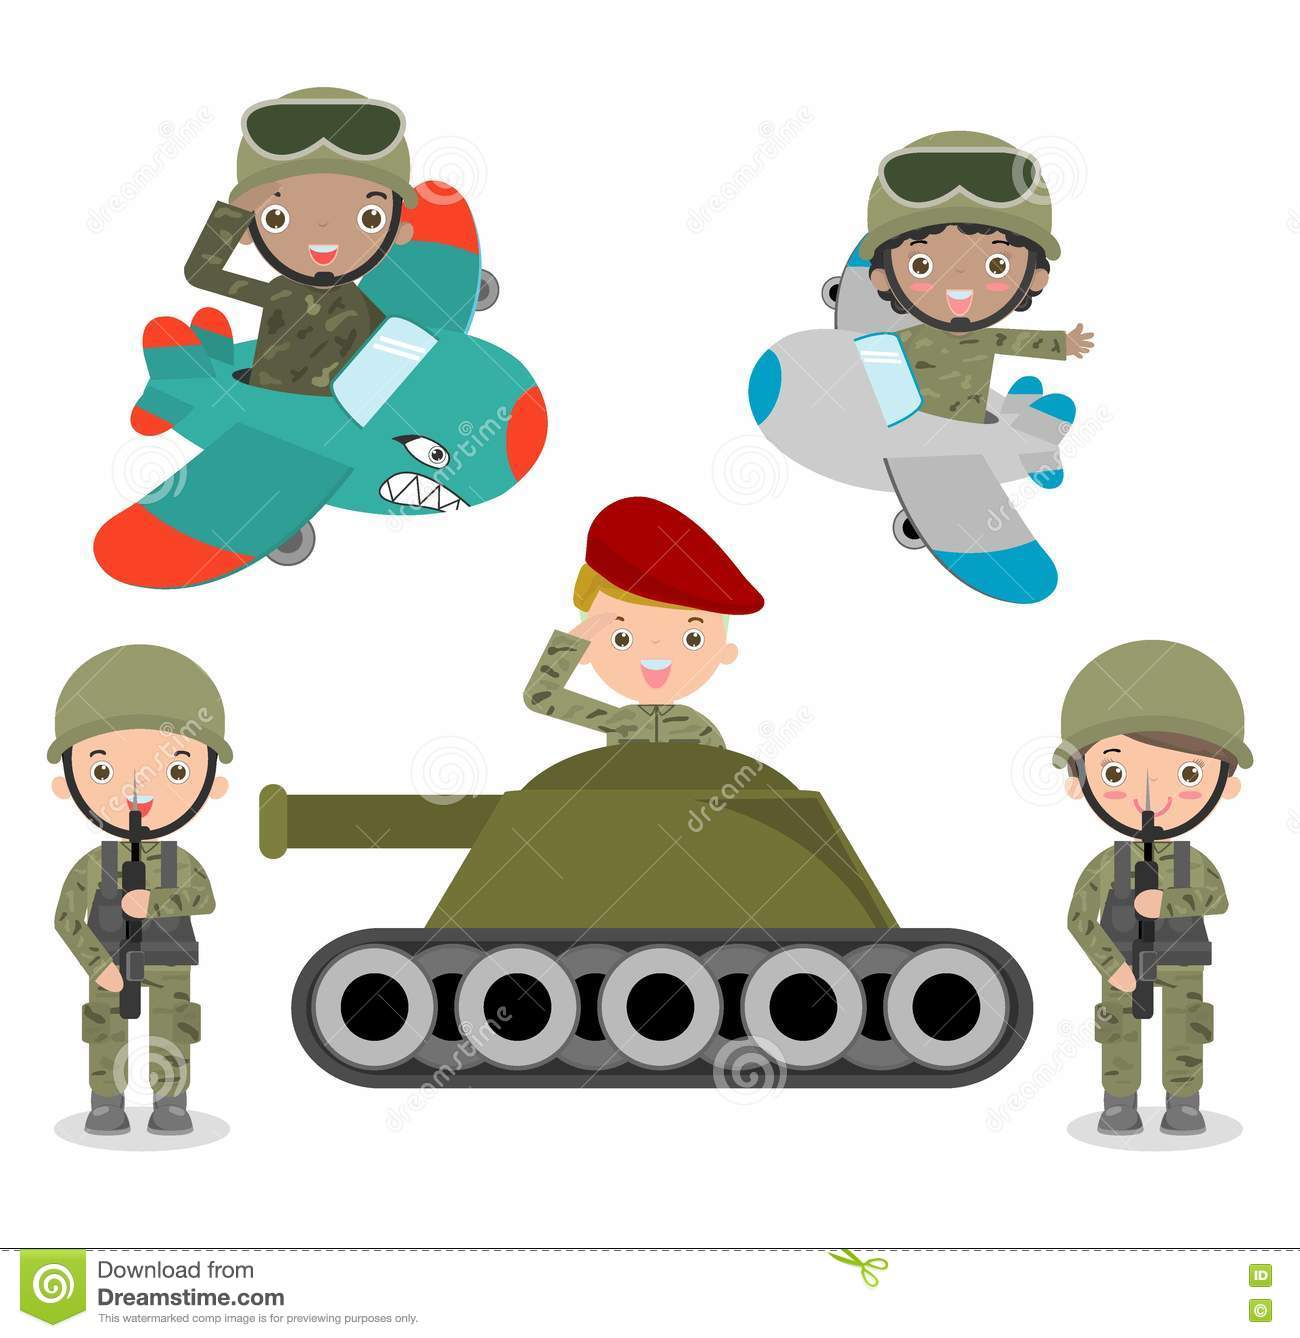 Set of soldiers, cartoon Soldier set, kids wearing soldiers costumes